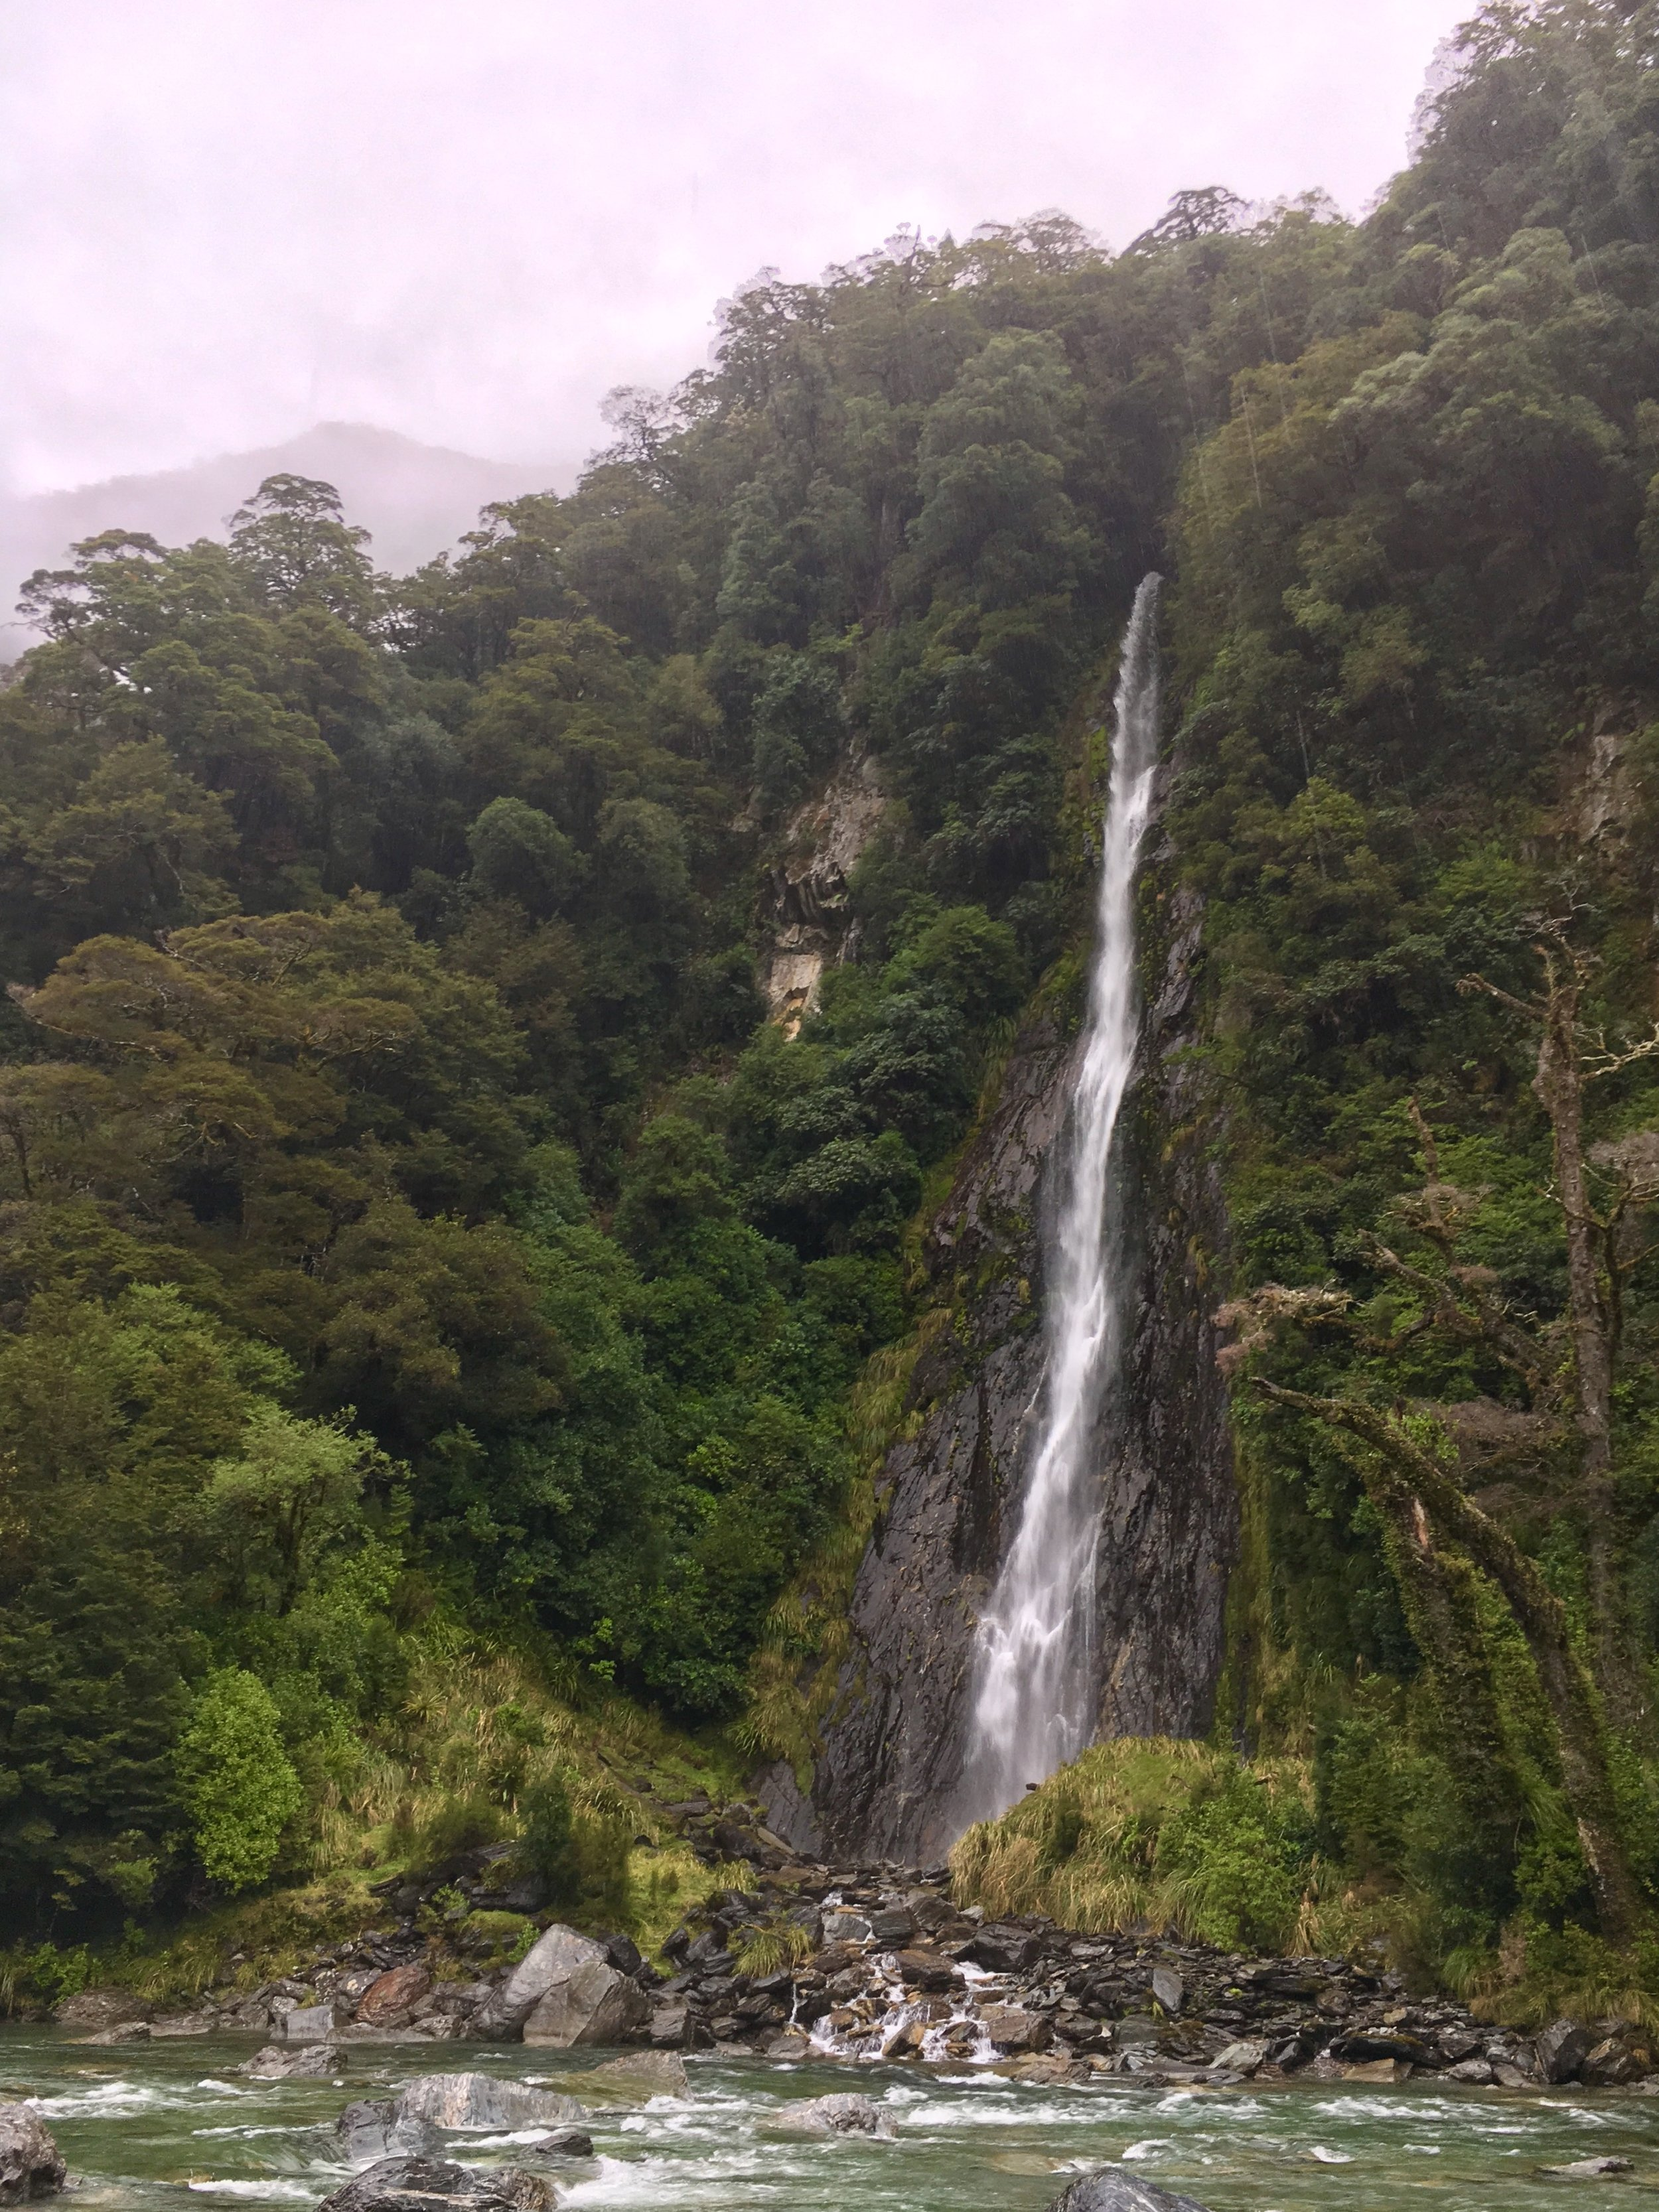 Waterfall after crossing the Haast pass